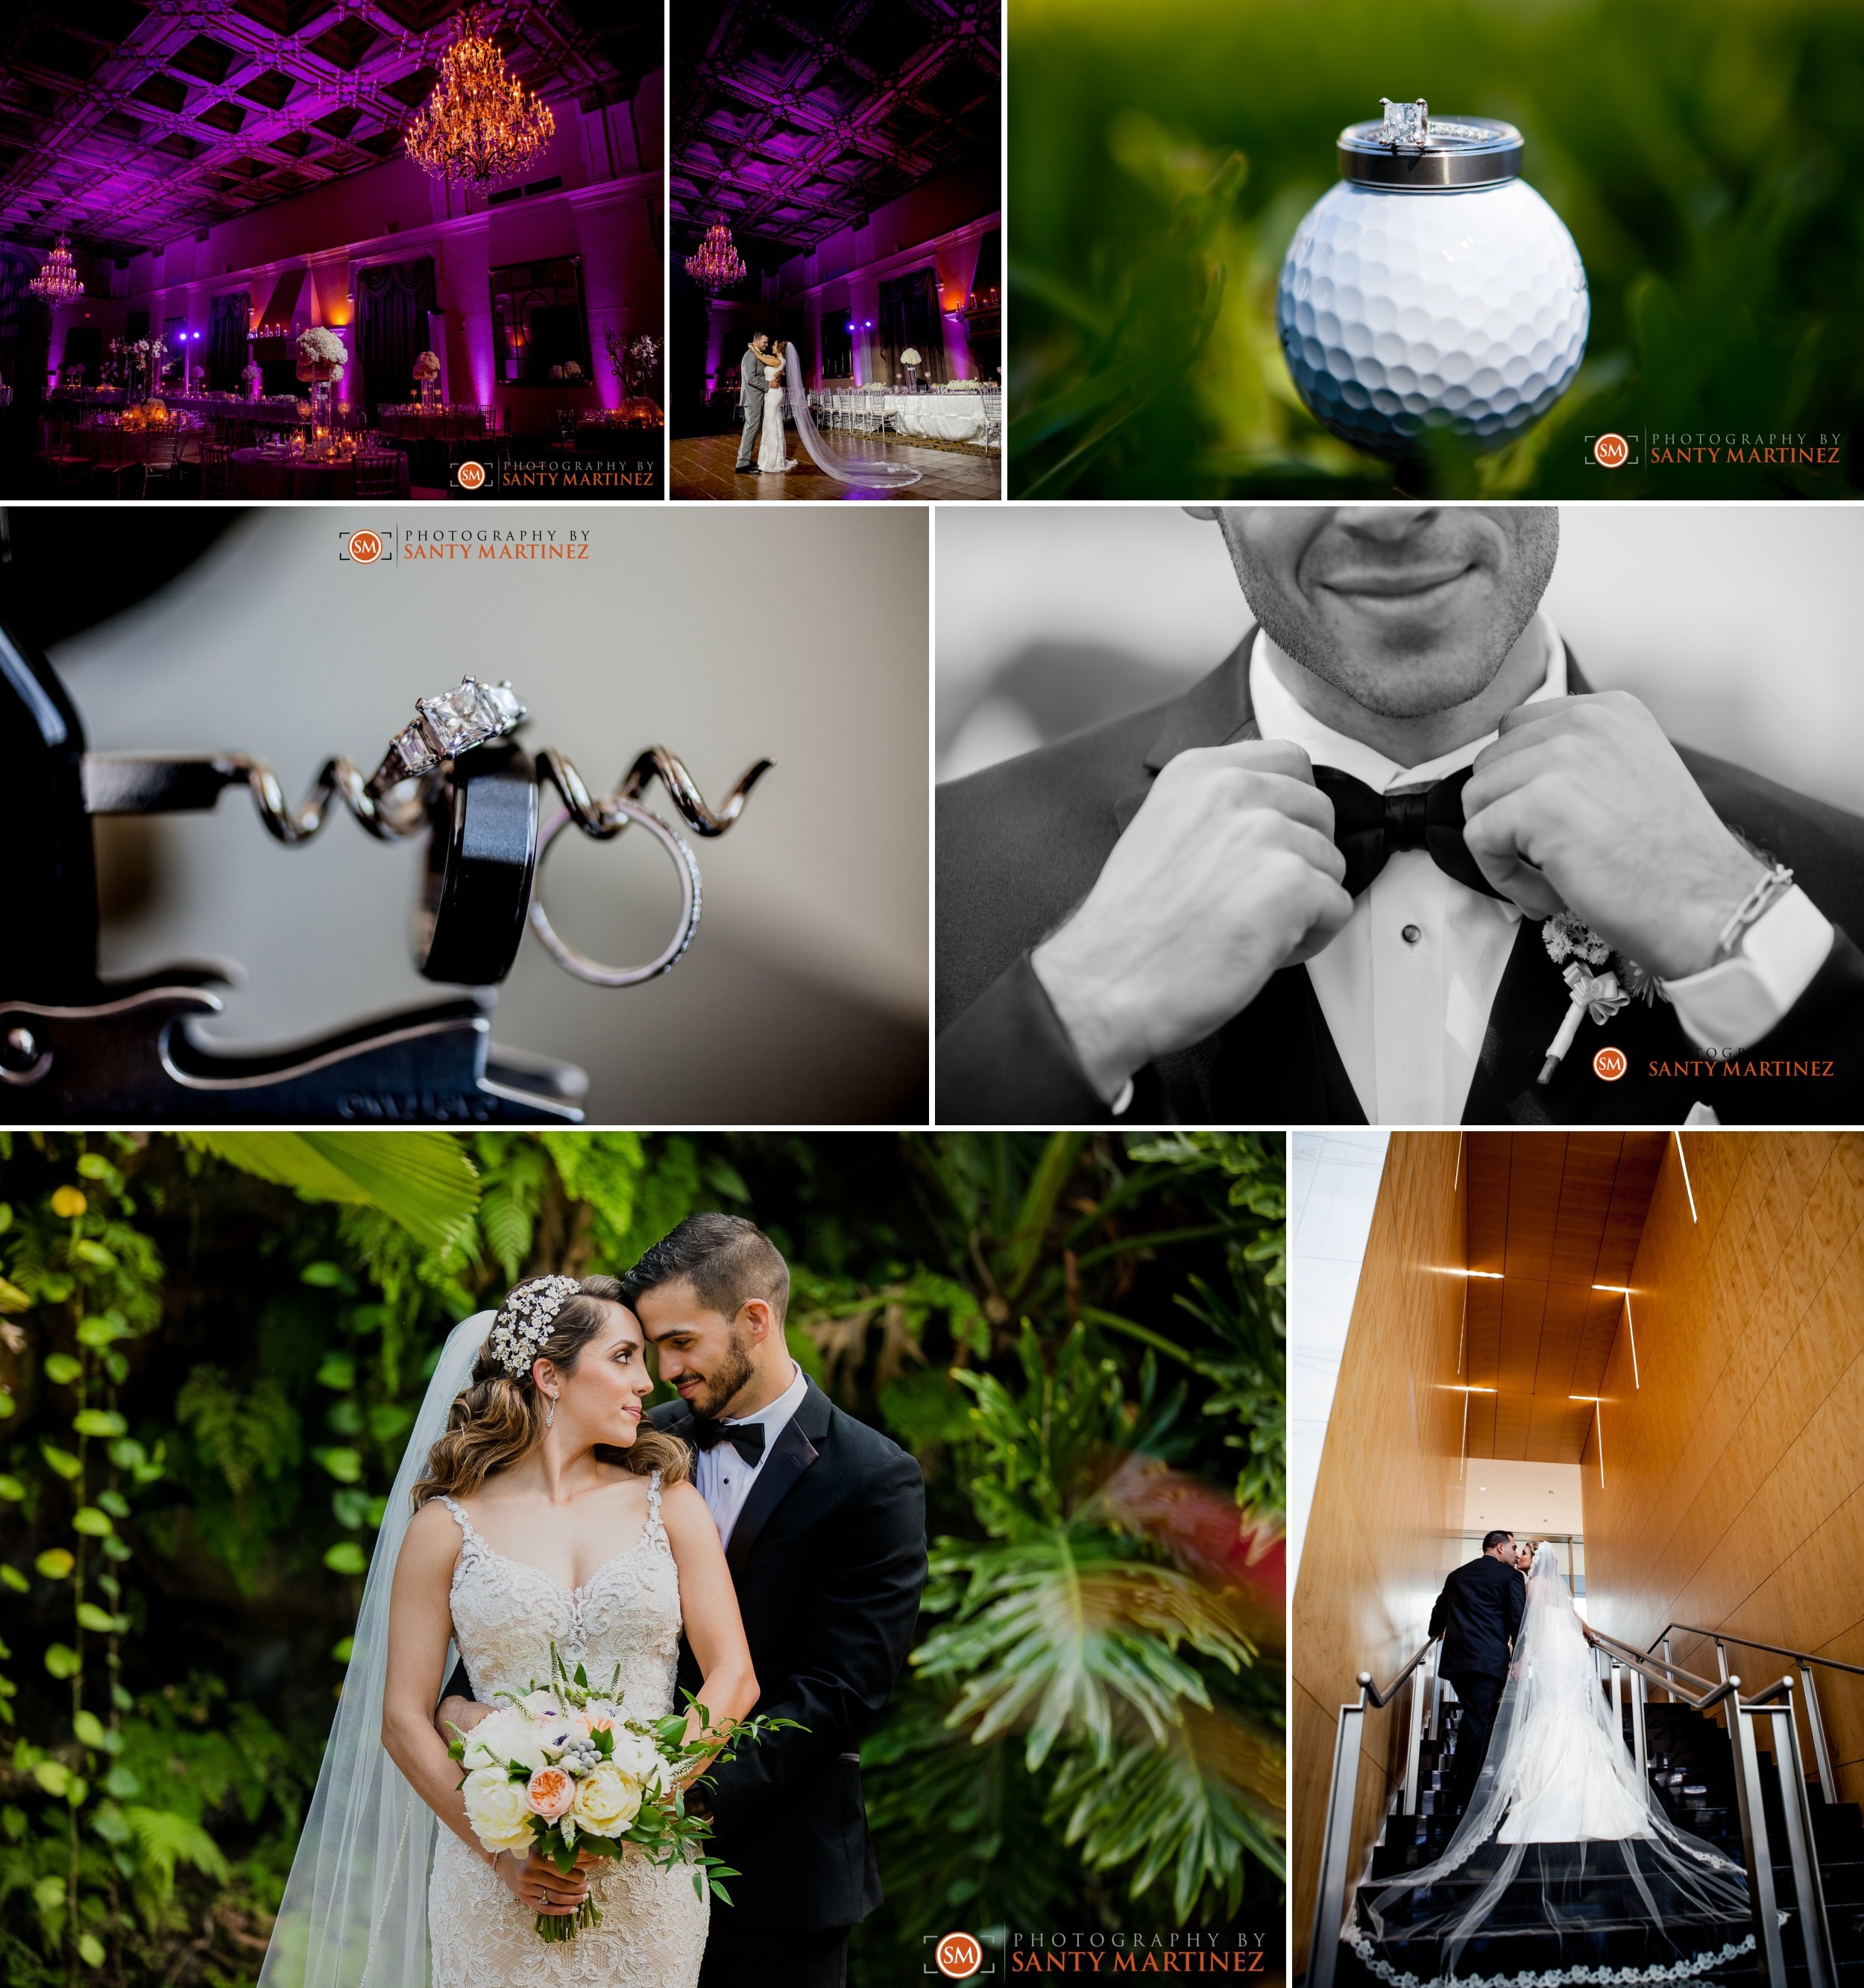 Santy Martinez - Photography - Miami Wedding Photographers 23.jpg